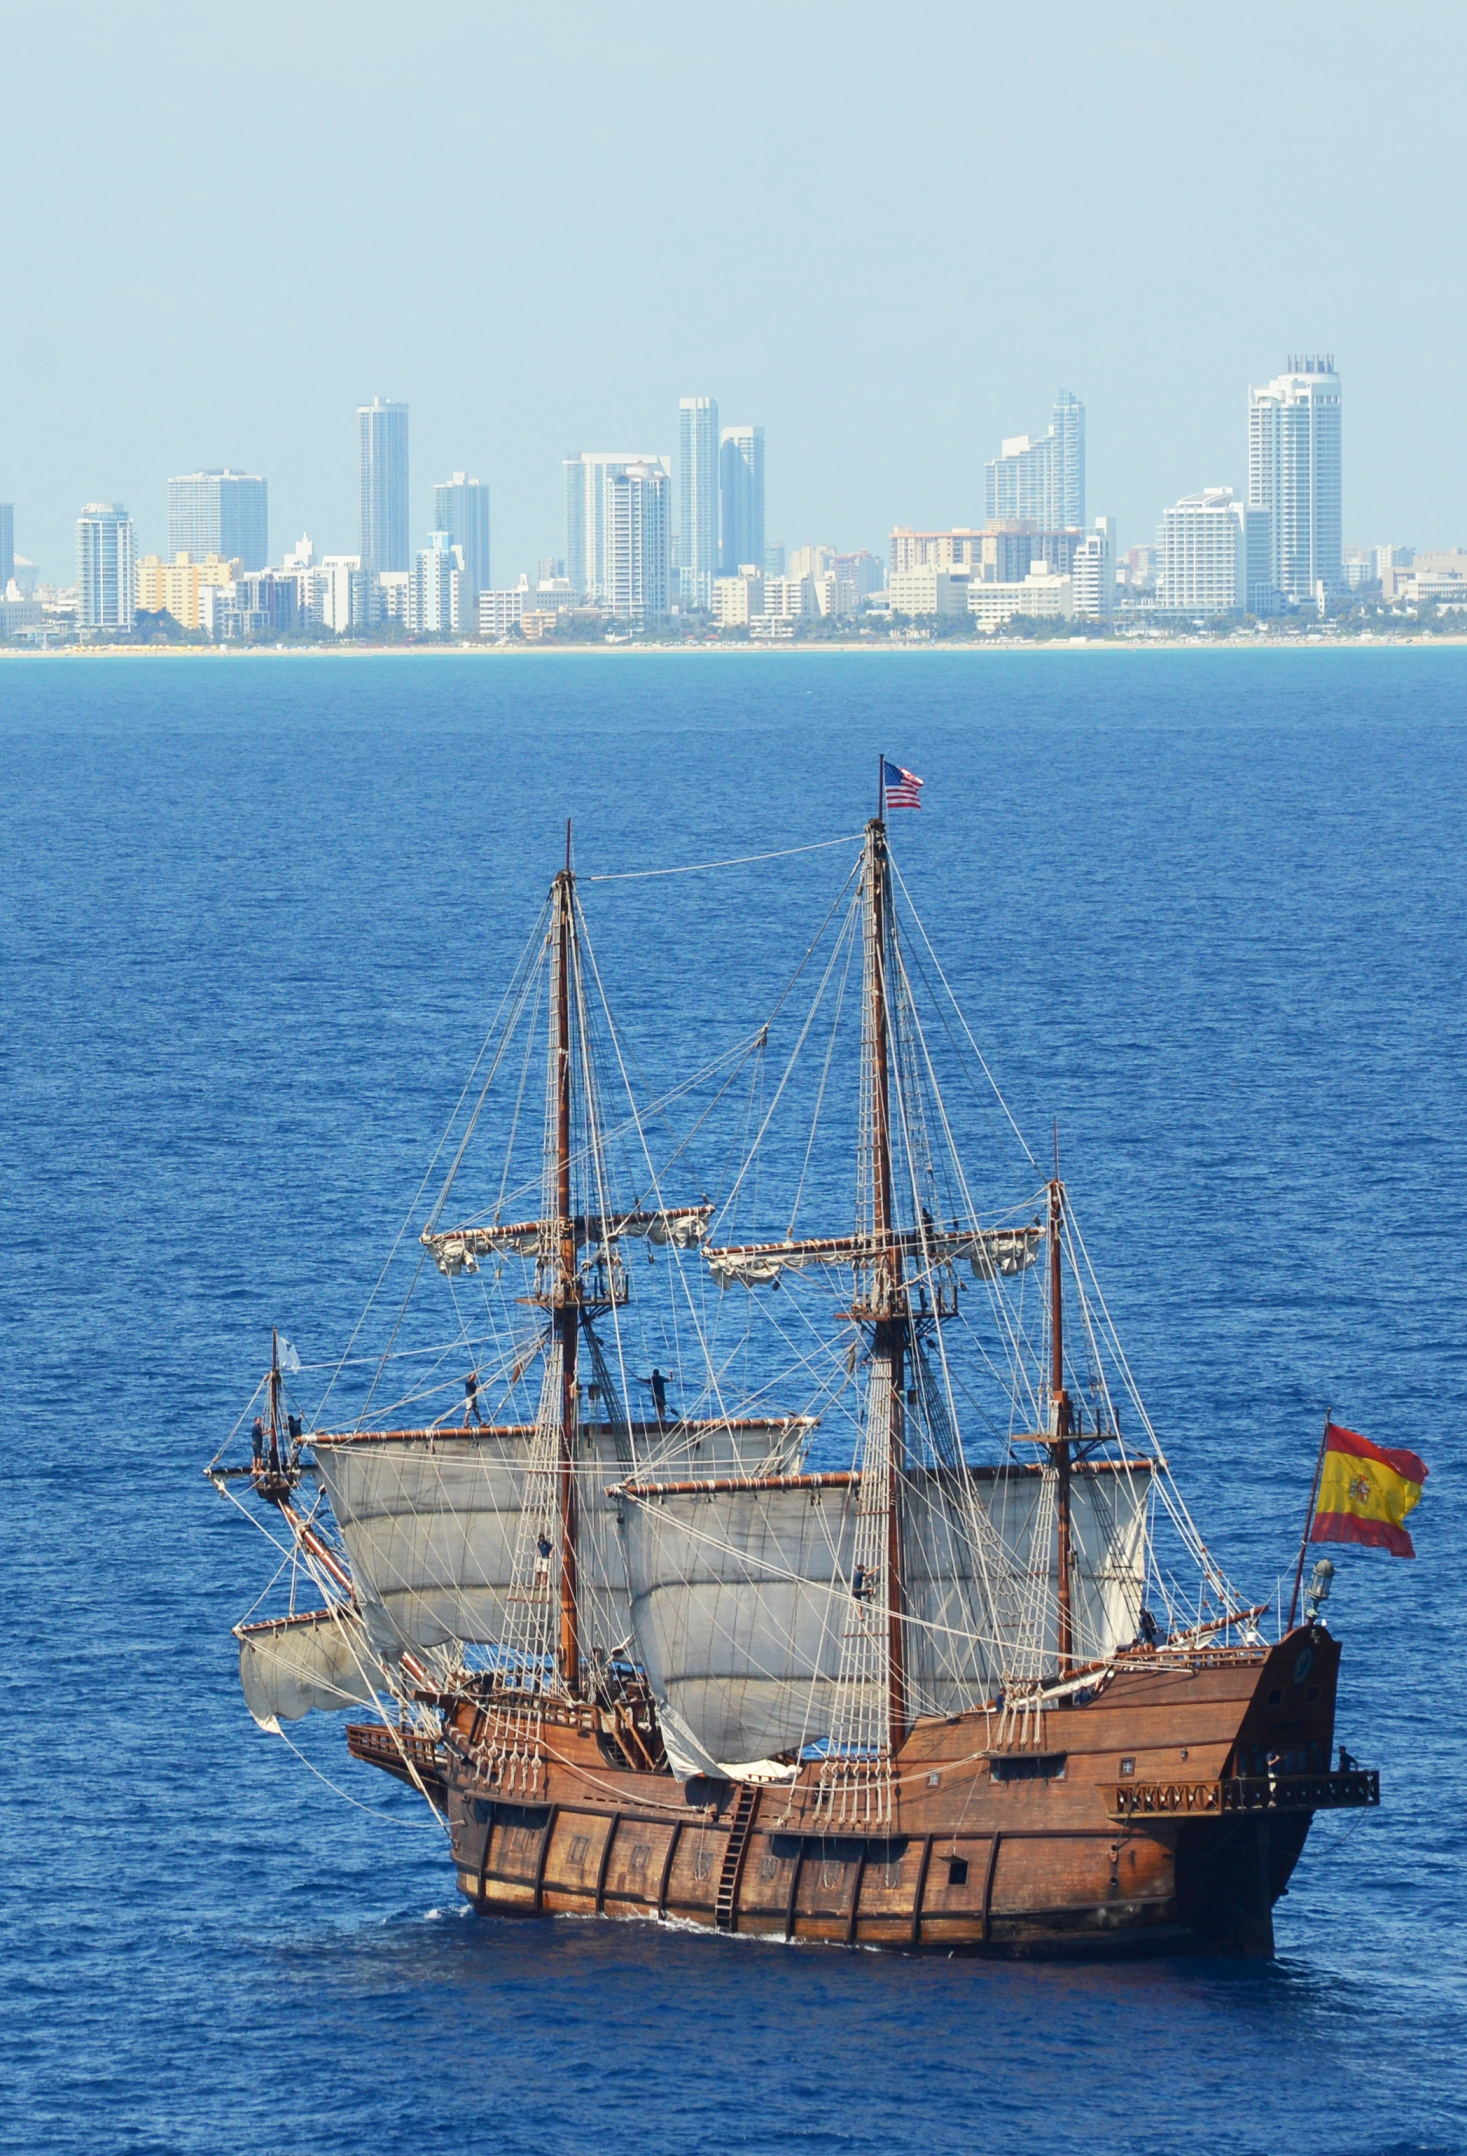 El Galeón arrives in Miami after sailing from Spain to commemorate 500 years since Spaniard Juan Ponce de Leon claimed La Florida for Spain. The ship will sail Florida's east coast through June 3, stopping at four ports for public tours. Credit: Peter W. Cross/VISIT FLORIDA